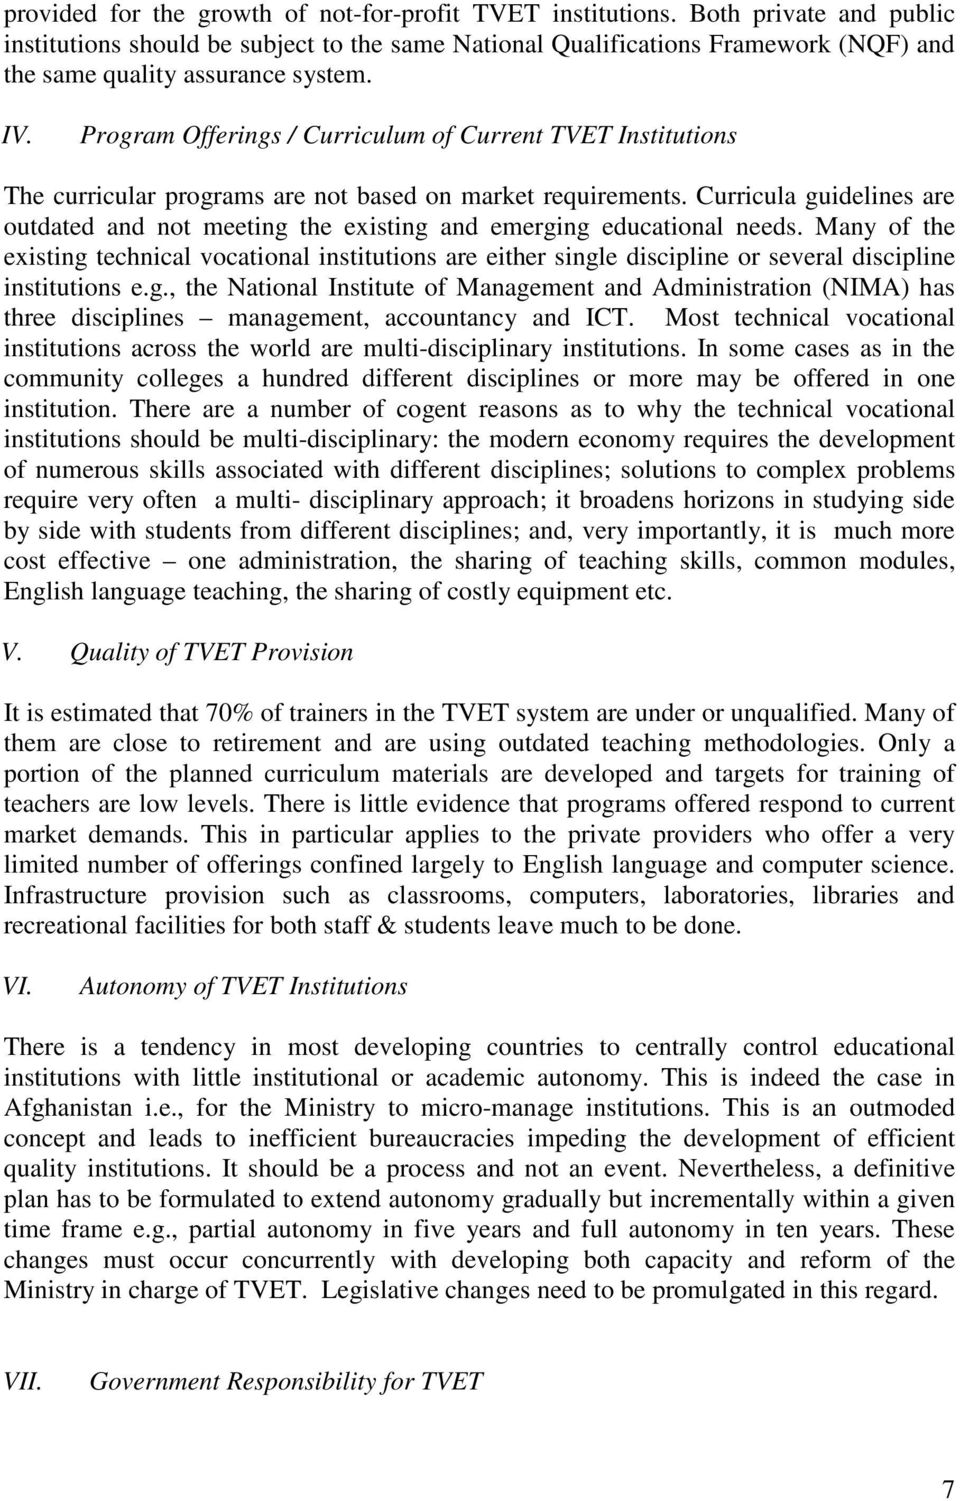 Program Offerings / Curriculum of Current TVET Institutions The curricular programs are not based on market requirements.